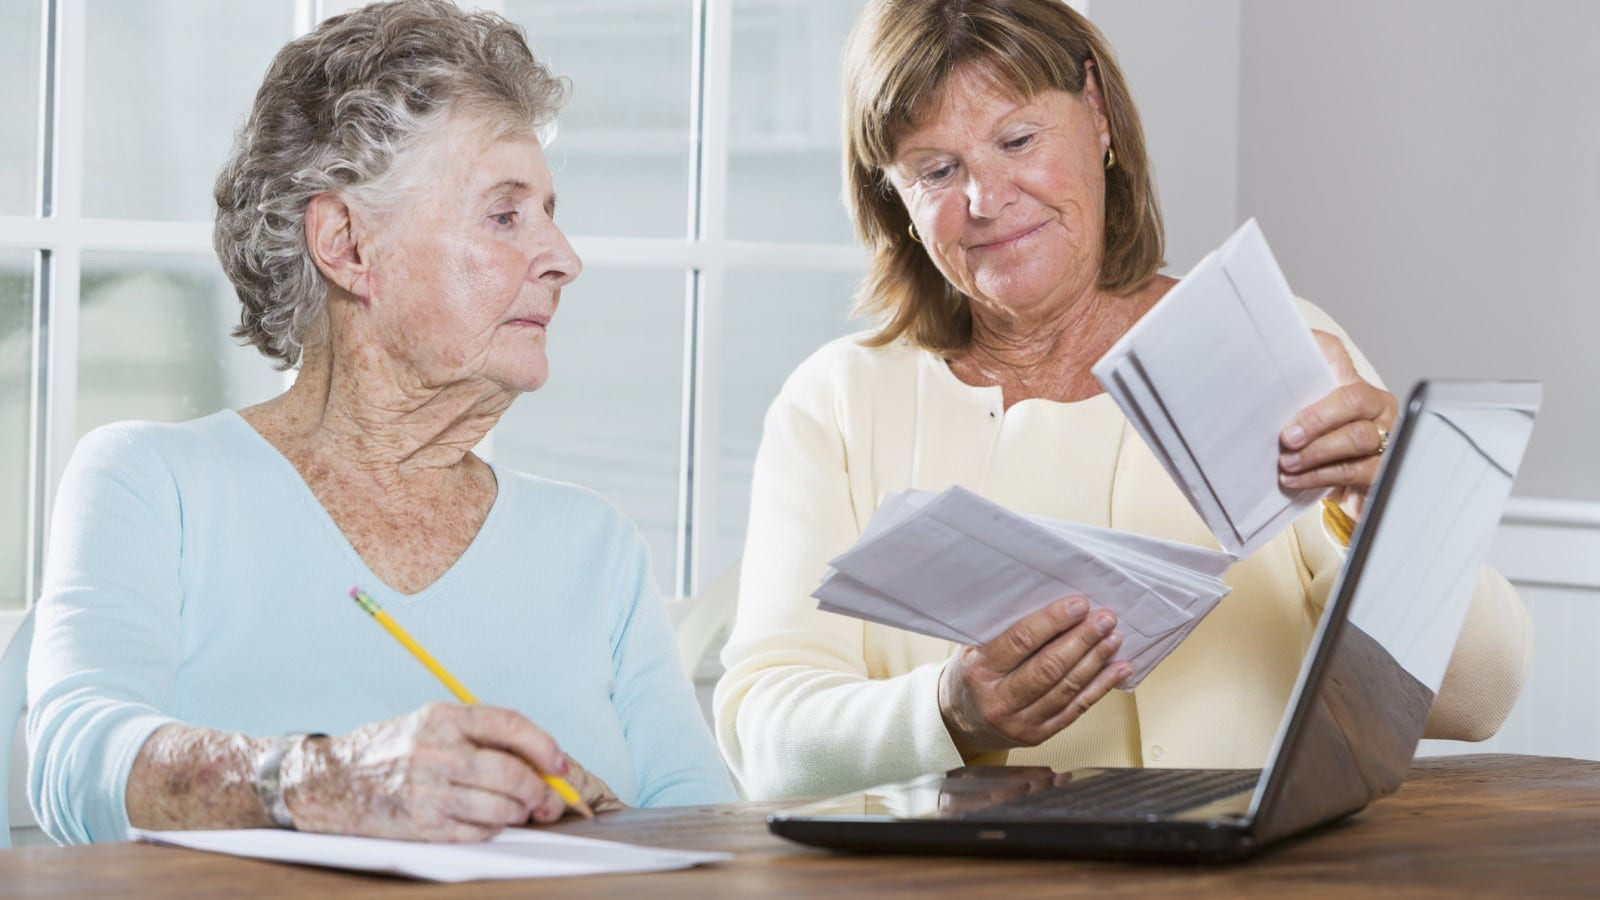 Elderly Mother And Daughter Examining Social Security Documents Stock Photo